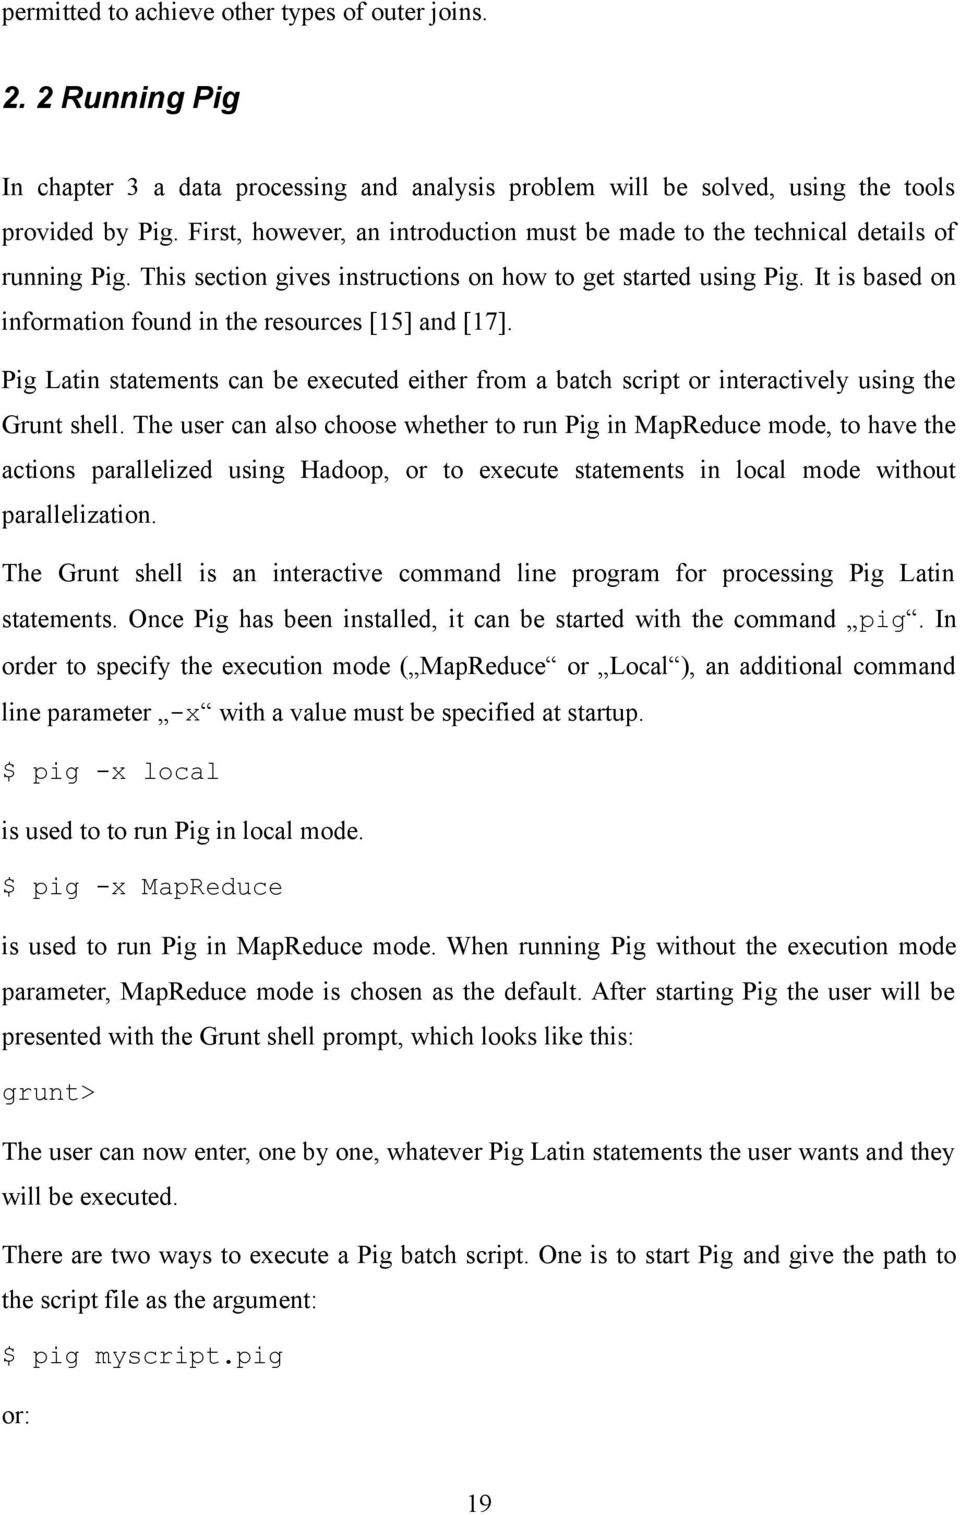 It is based on information found in the resources [15] and [17]. Pig Latin statements can be executed either from a batch script or interactively using the Grunt shell.